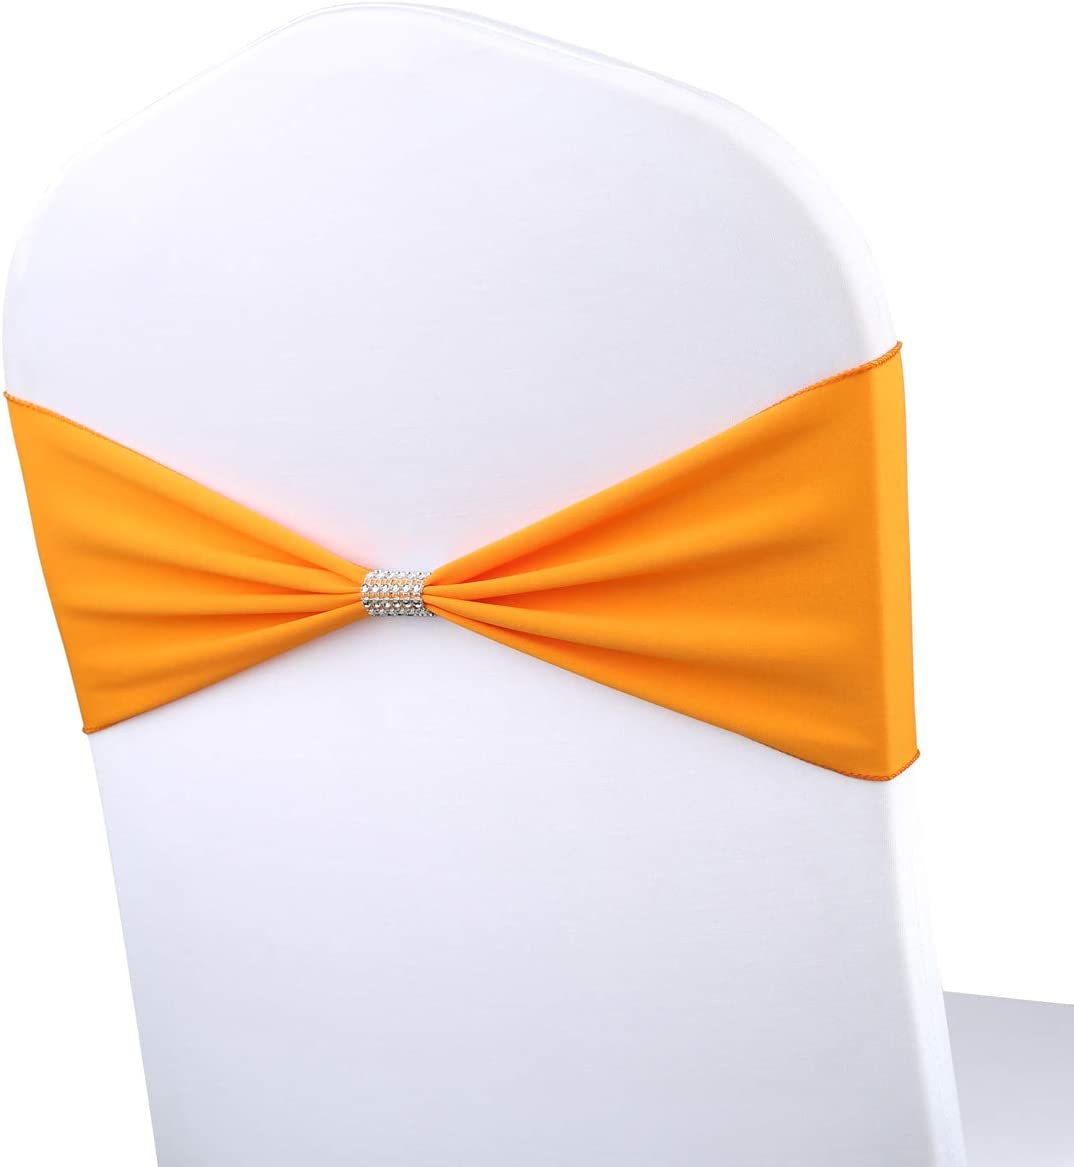 Thoxia 50PCS Stretch Spandex Wedding Chair Sashes Bows Elastic Banquet Party Decoration Chairs Bands with Bling Rhinestone Mesh Birthday Reception Ceremony Event Decor Supplies (Orange)